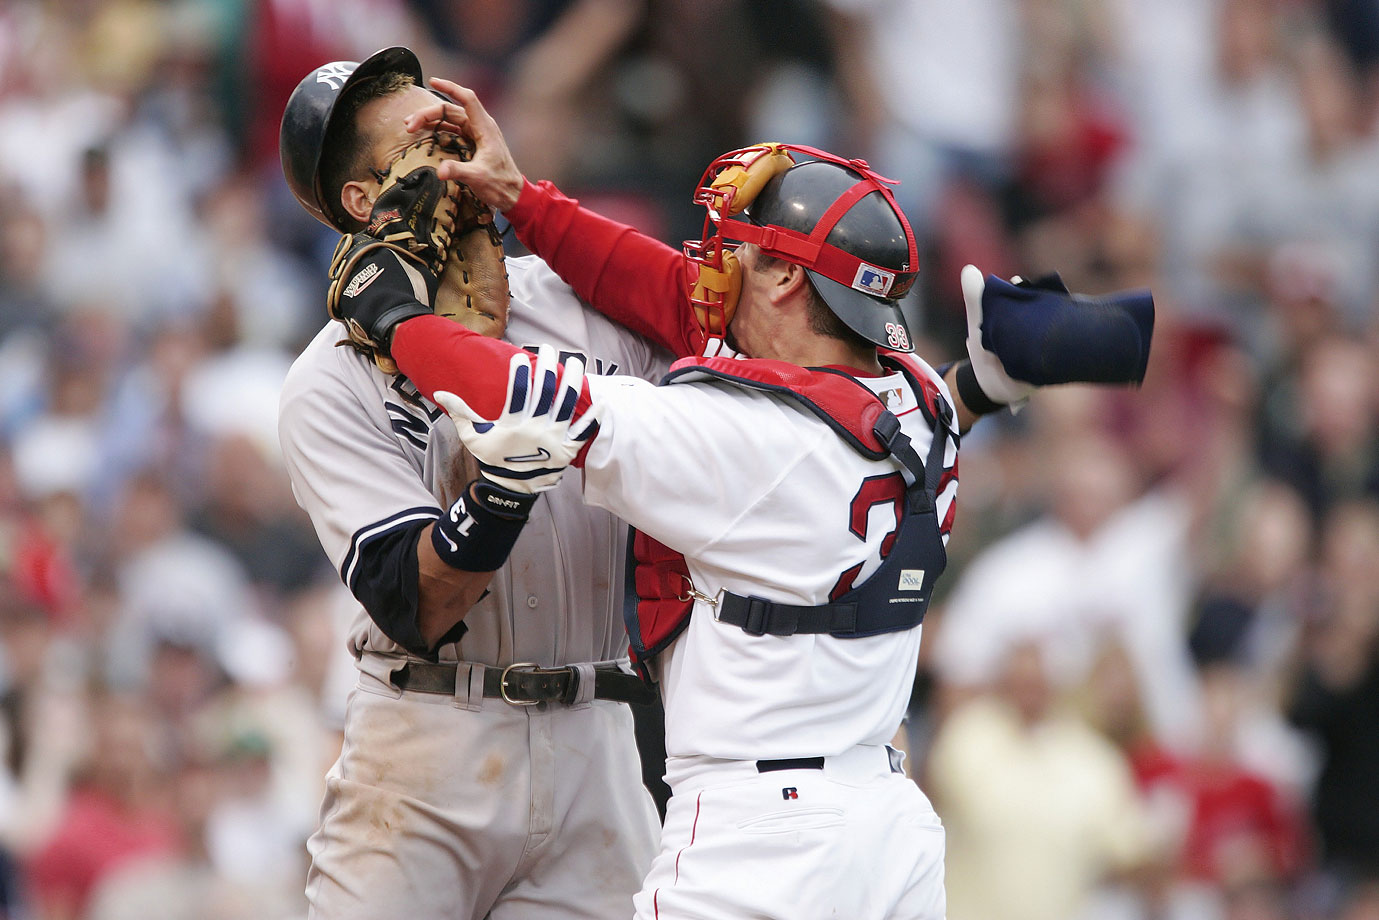 Jason Varitek may have cemented his place in Red Sox lore when he challenged Alex Rodriguez during a July game at Fenway Park in 2004. Varitek shoved Rodriguez in the face with his glove after A-Rod objected to being hit with a Bronson Arroyo pitch, and following the subsequent brawl (in which both Varitek and Rodriguez were ejected), the Red Sox rallied to a dramatic 11-10 victory. The image can be found hanging in many a sports bar throughout New England.